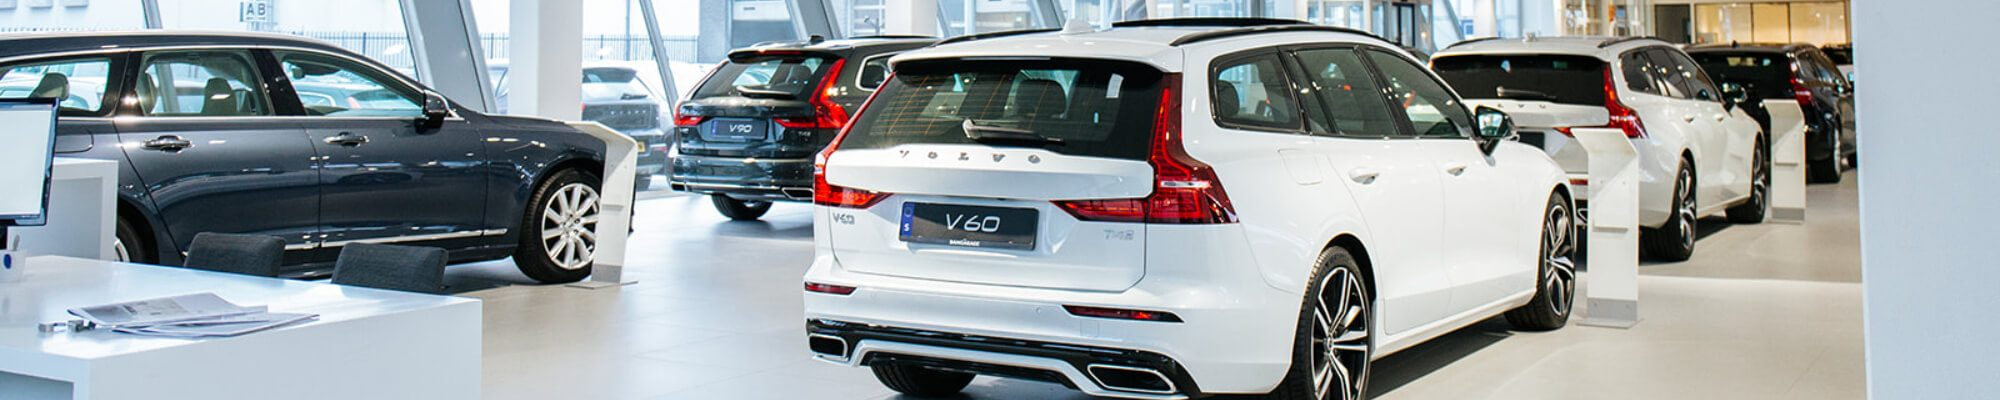 Volvo Bangarage Lease